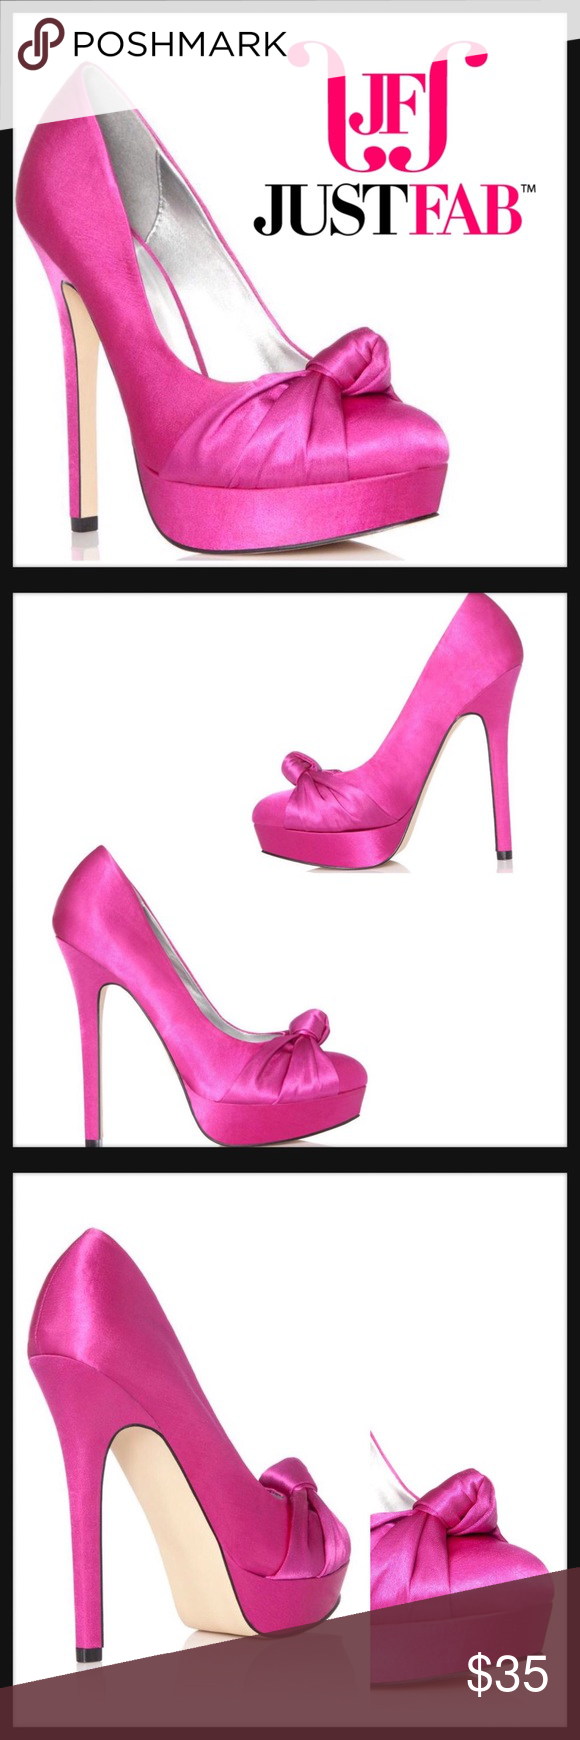 "JustFab 7.5 GABBY Satin Stiletto Heels Pumps Shoes Just Fabulous Fuchsia ""Gabby"" Stiletto Condition: New without box Size: 7.5 Color: Fuchsia Pink Product Detail: Silky satin material 5"" Heel Bow details Man made sole Man made upper detail design New unused JustFab Shoes Heels"